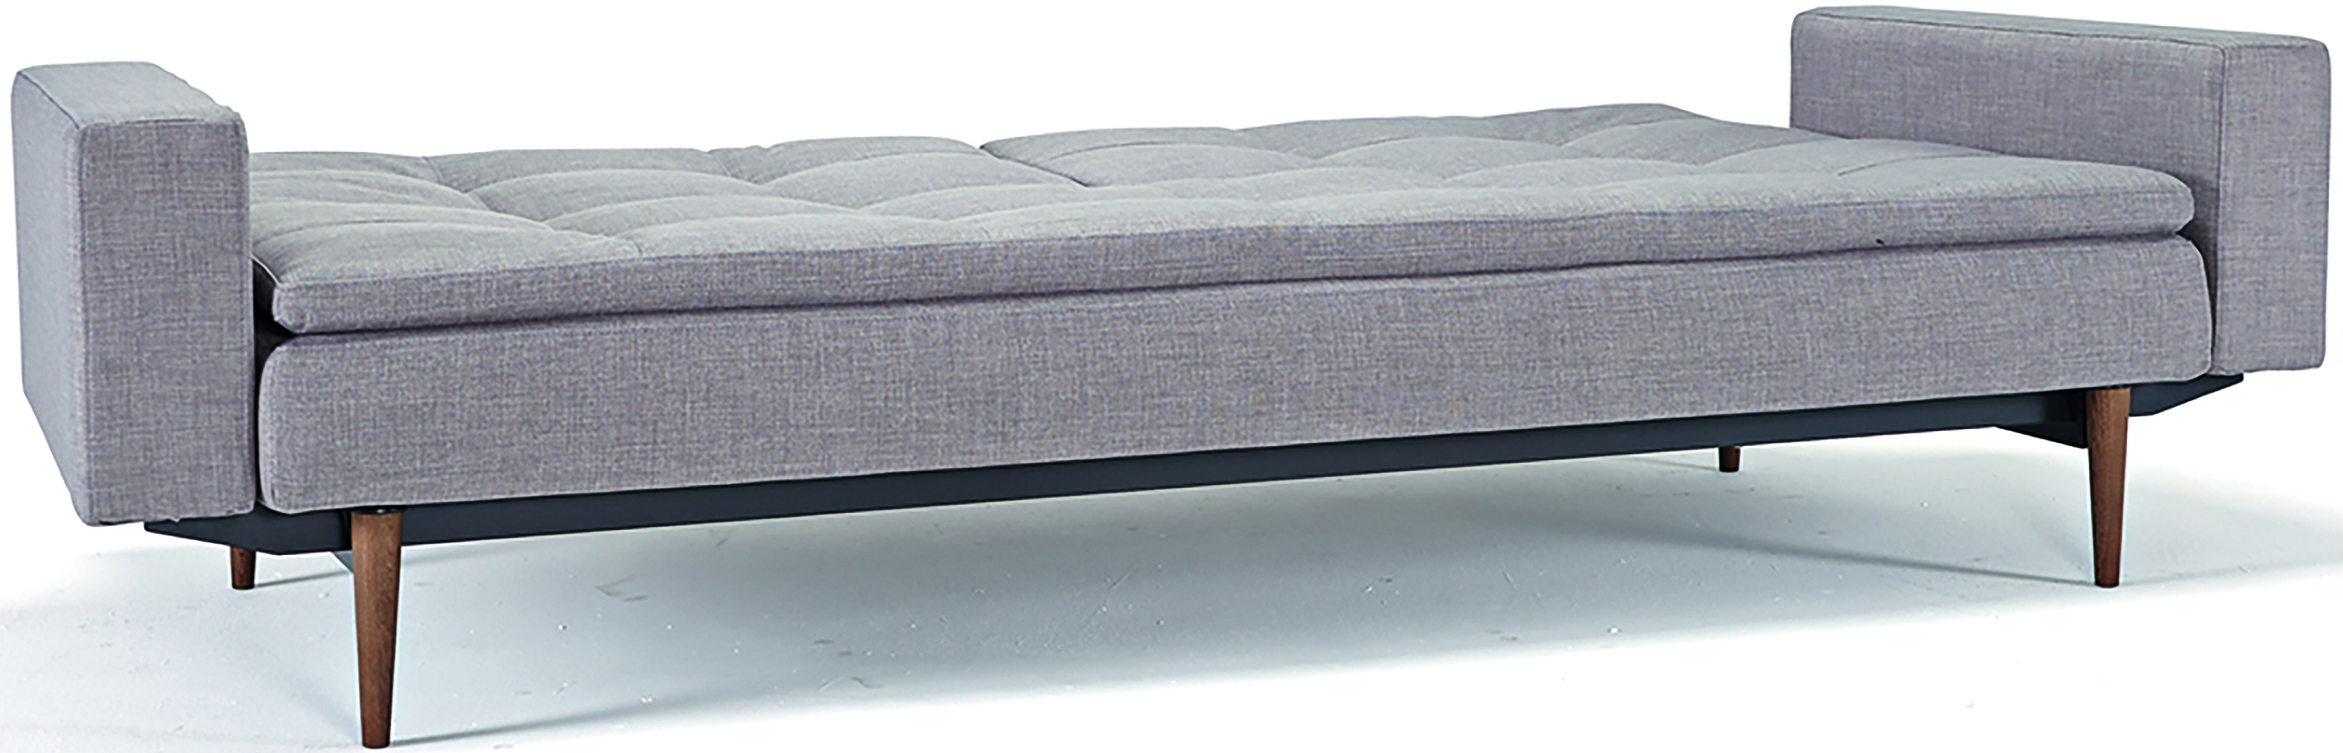 innovation dublexo sofa with arms begum